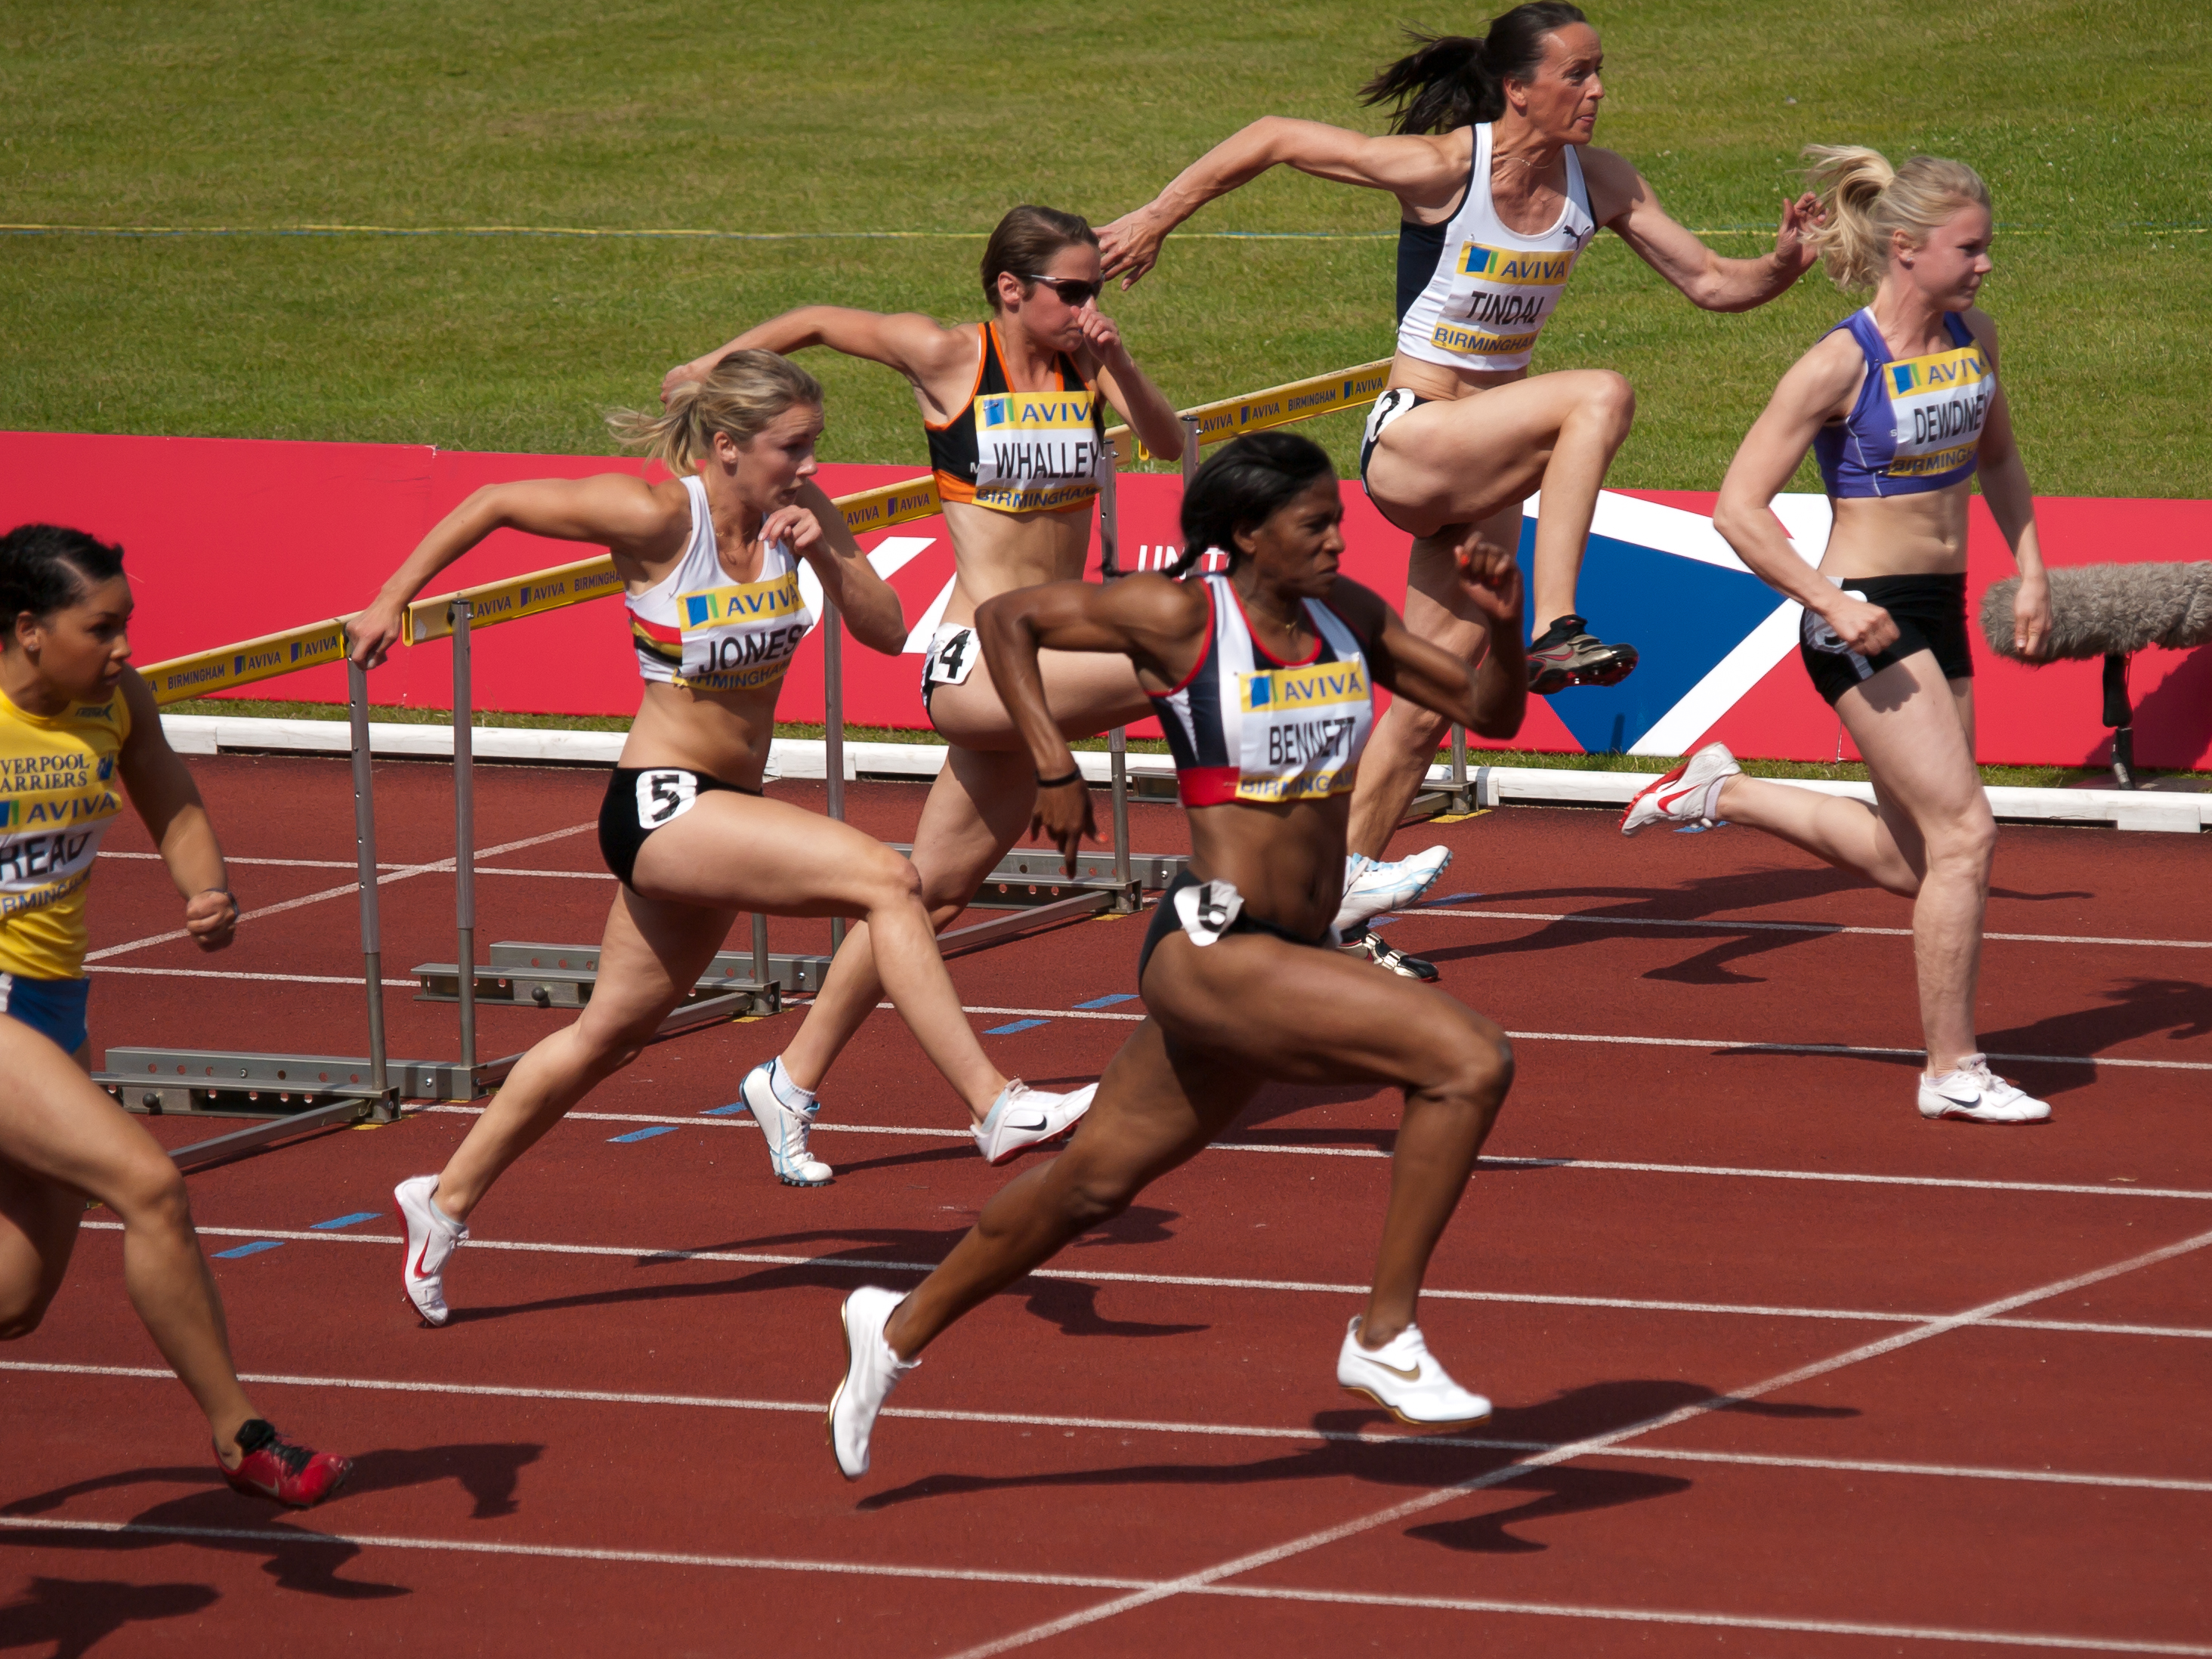 Runners in Heat 1 of the Womens 100m Hurdles Semi-Final at the Aviva 2010 UK Athletics Championships and European Trials at the Alexandra Stadium in Birmingham